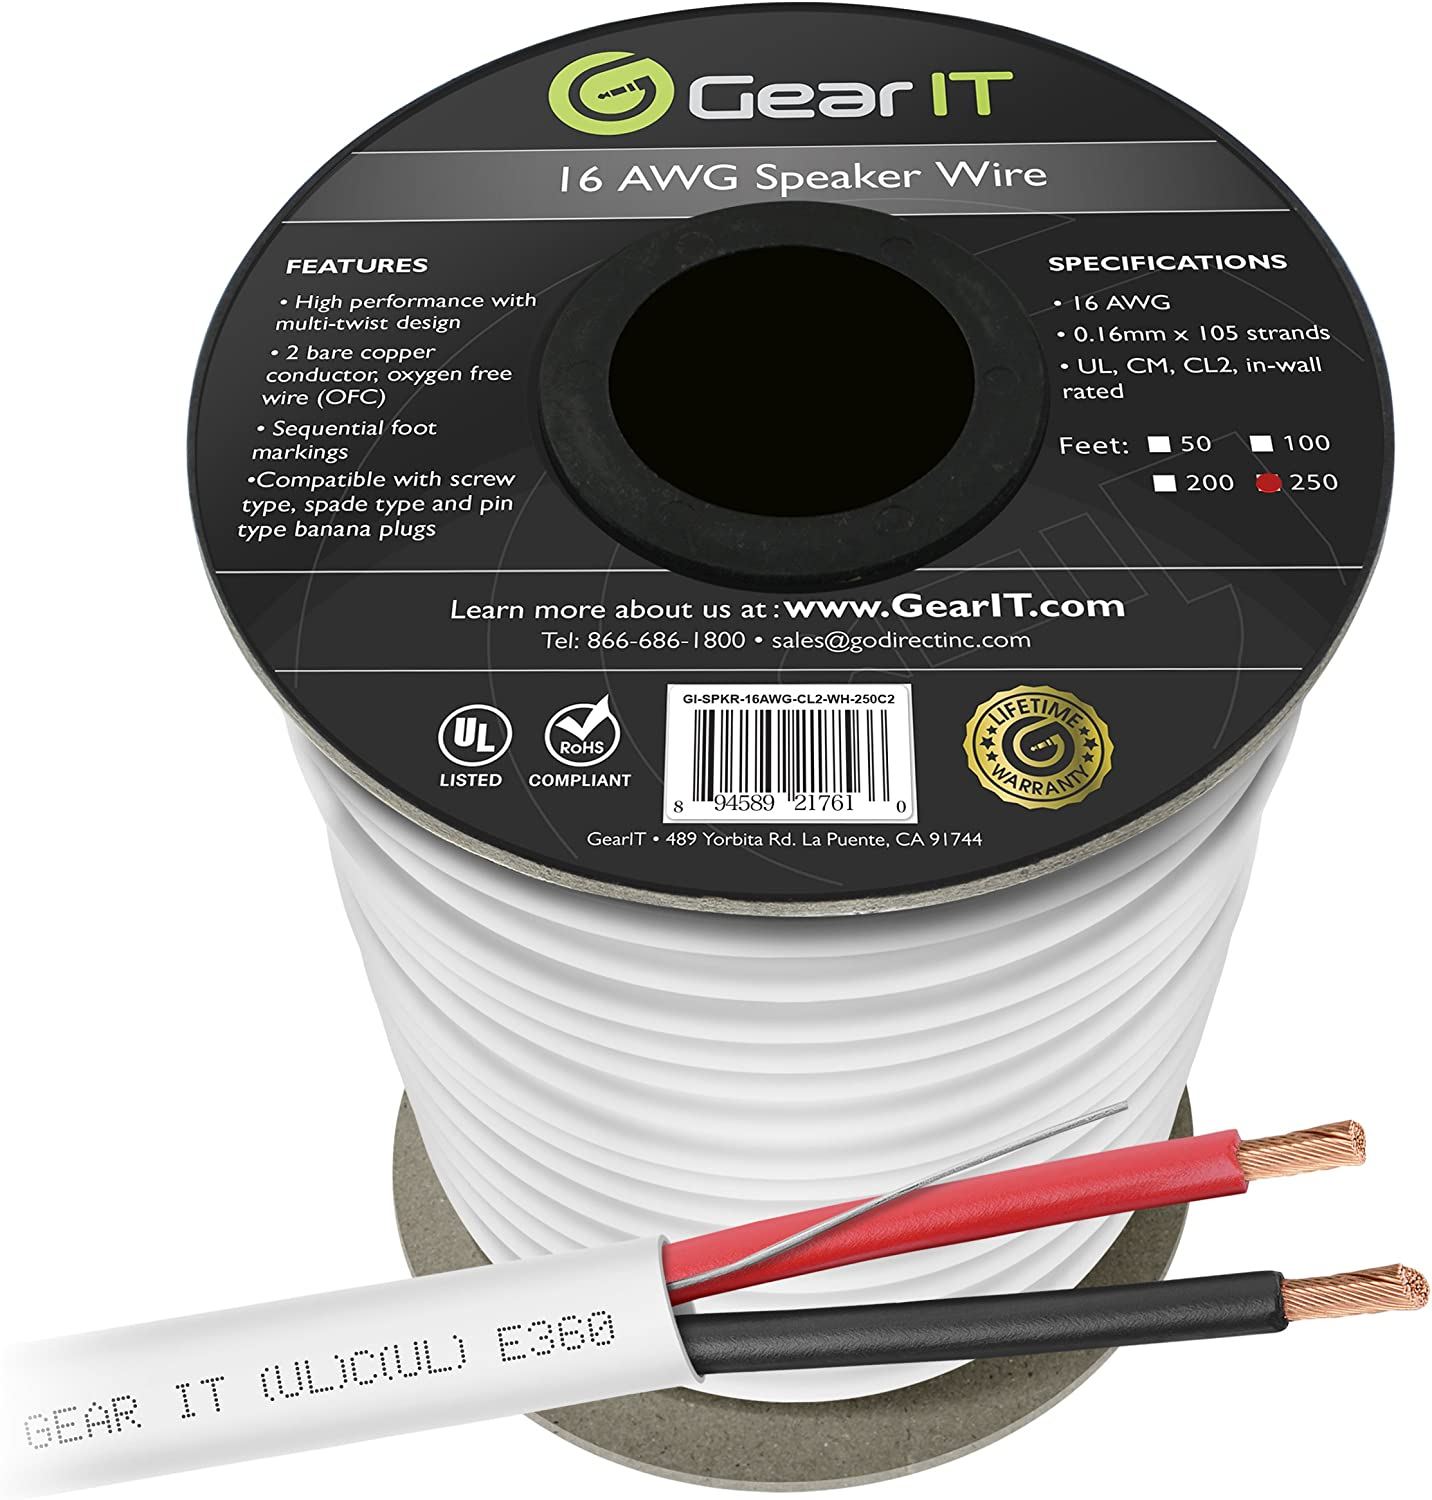 16 AWG CL2 OFC in Wall Speaker Wire, GearIT Pro Series 16 AWG Gauge (250 Feet / 76.2 Meters/White) OFC Oxygen Free Copper UL CL2 Rated in-Wall Speaker Wire Cable for Home Theater and Car Audio